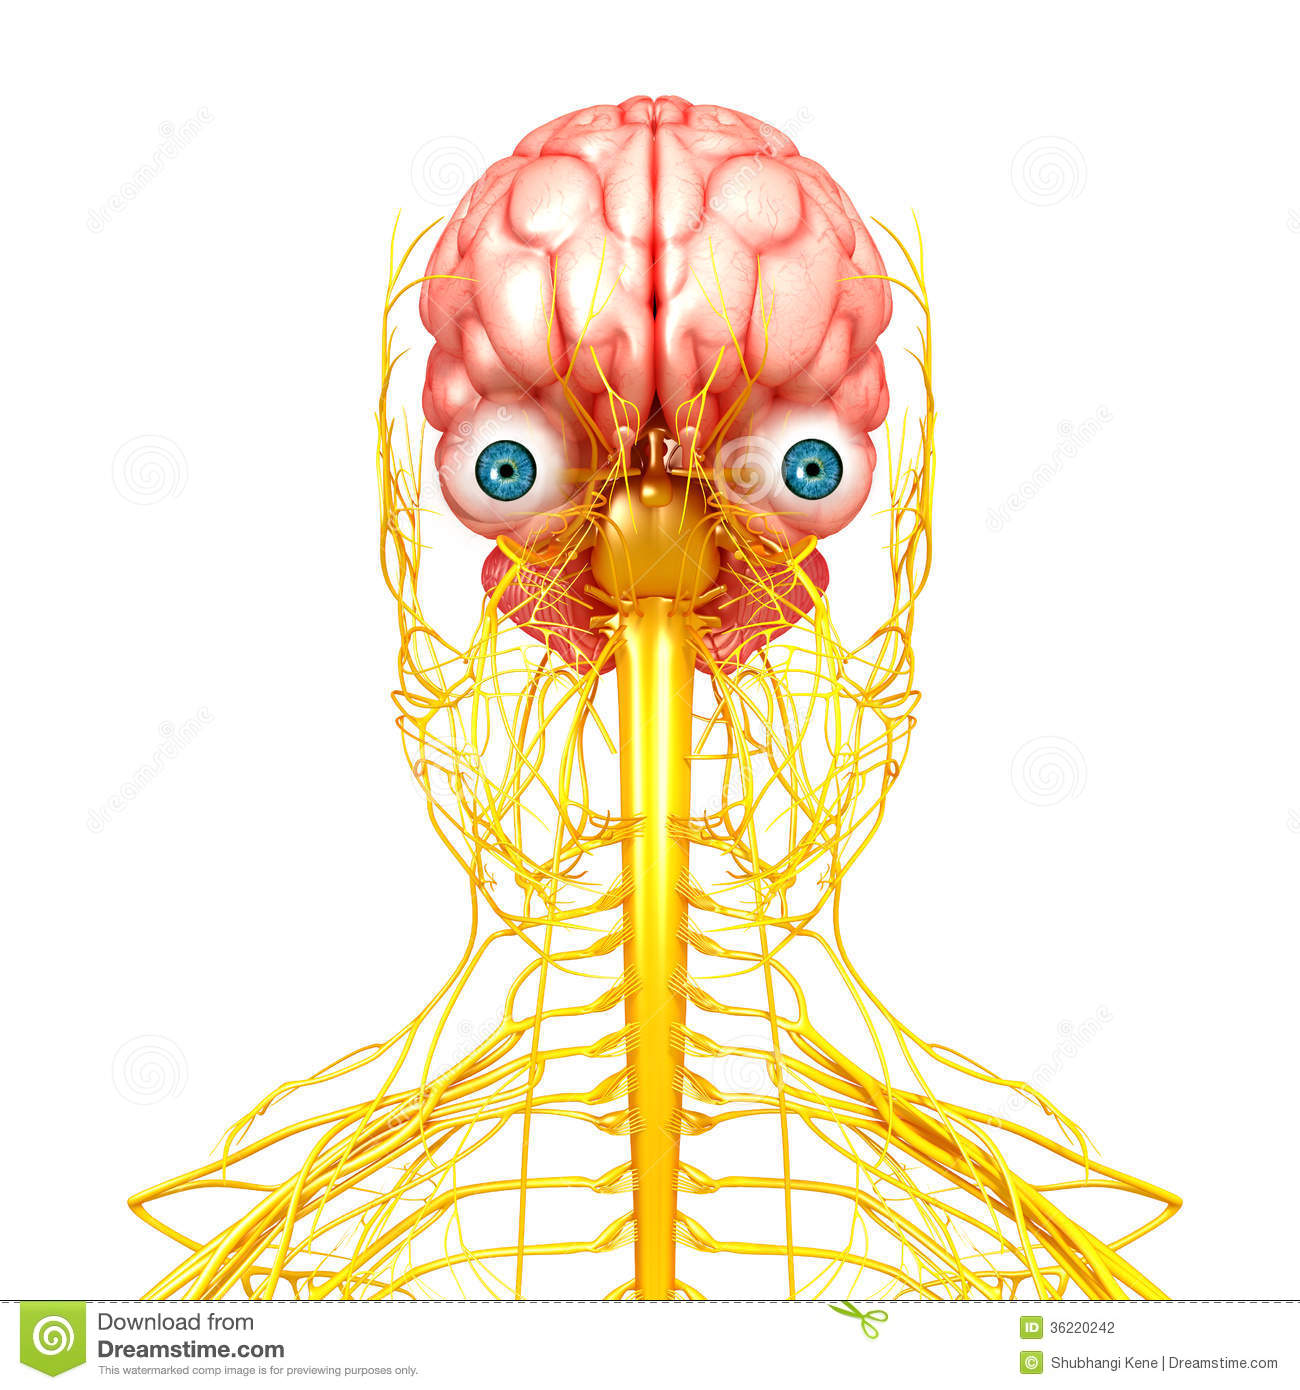 Nervous System Of Human Front Side View Stock Illustration